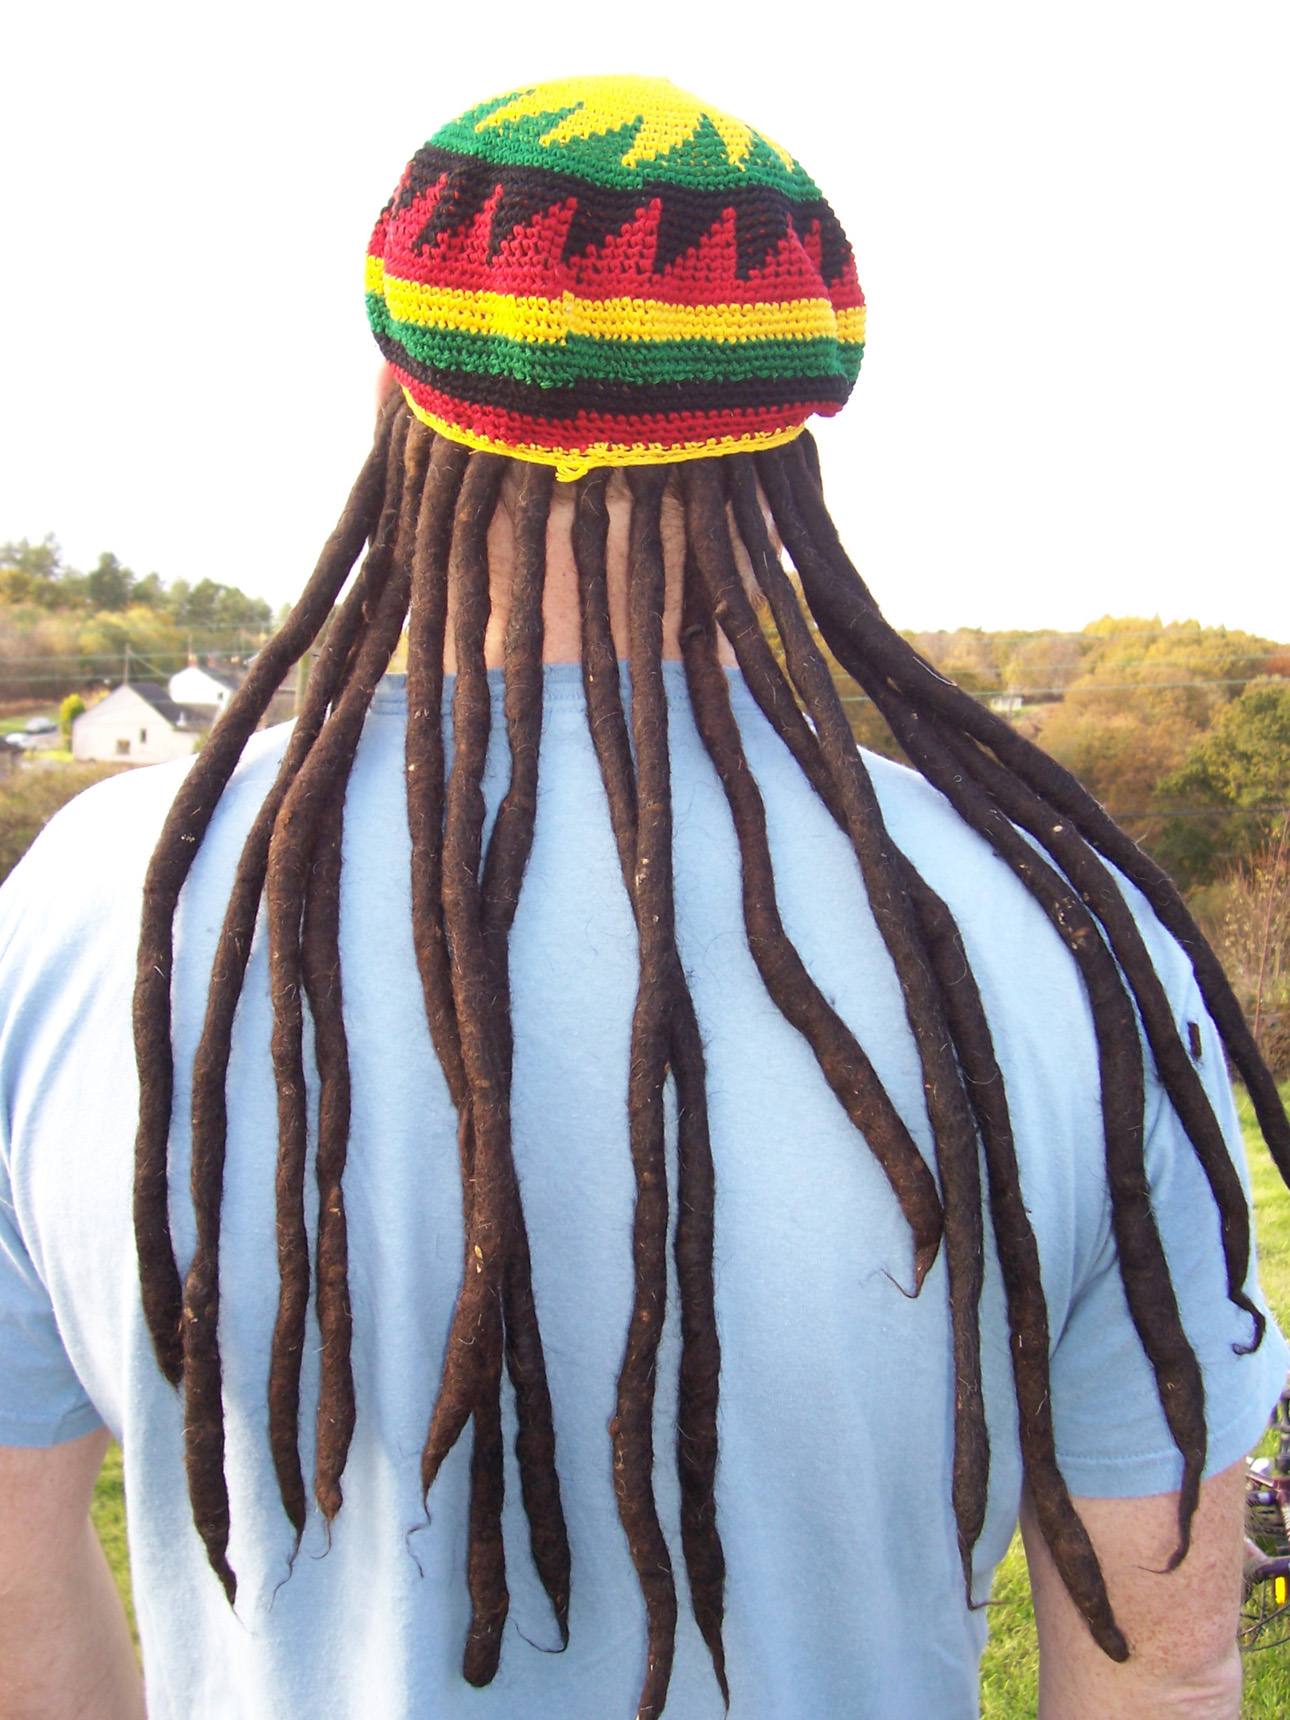 Free crochet pattern linkshippie tams, rasta hats, berets